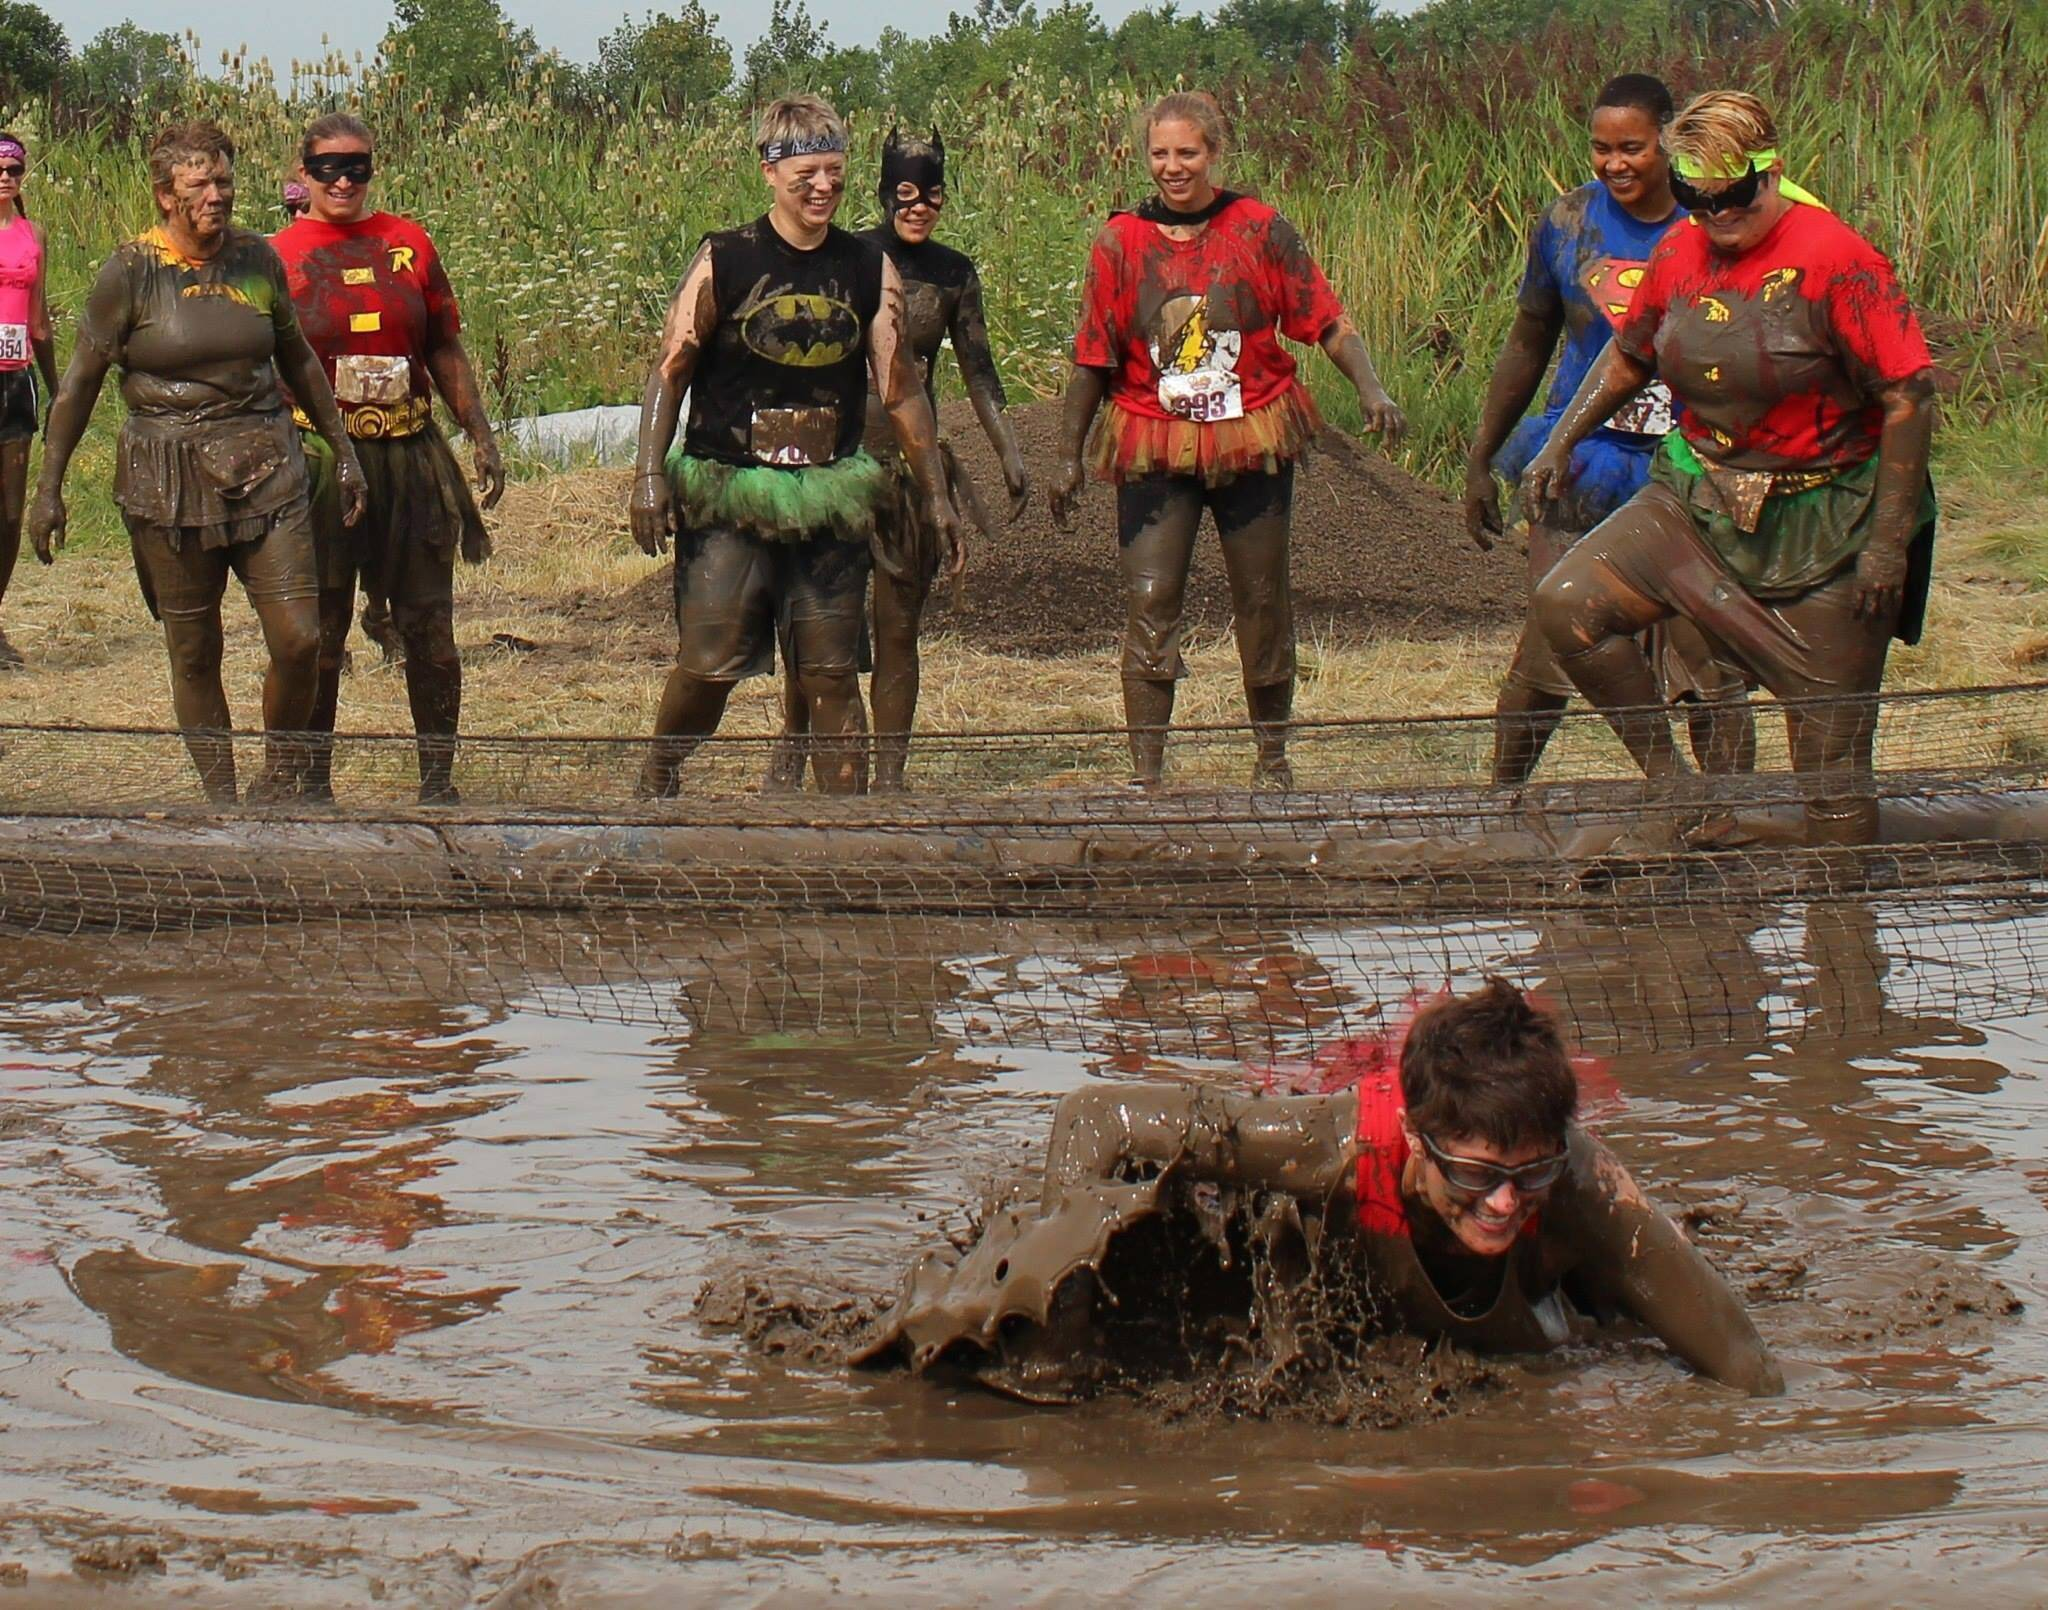 A group of women dressed as comic book heroes as they participated in the 5K mud run at Komen Pretty Muddy 2014 in Orland Park.